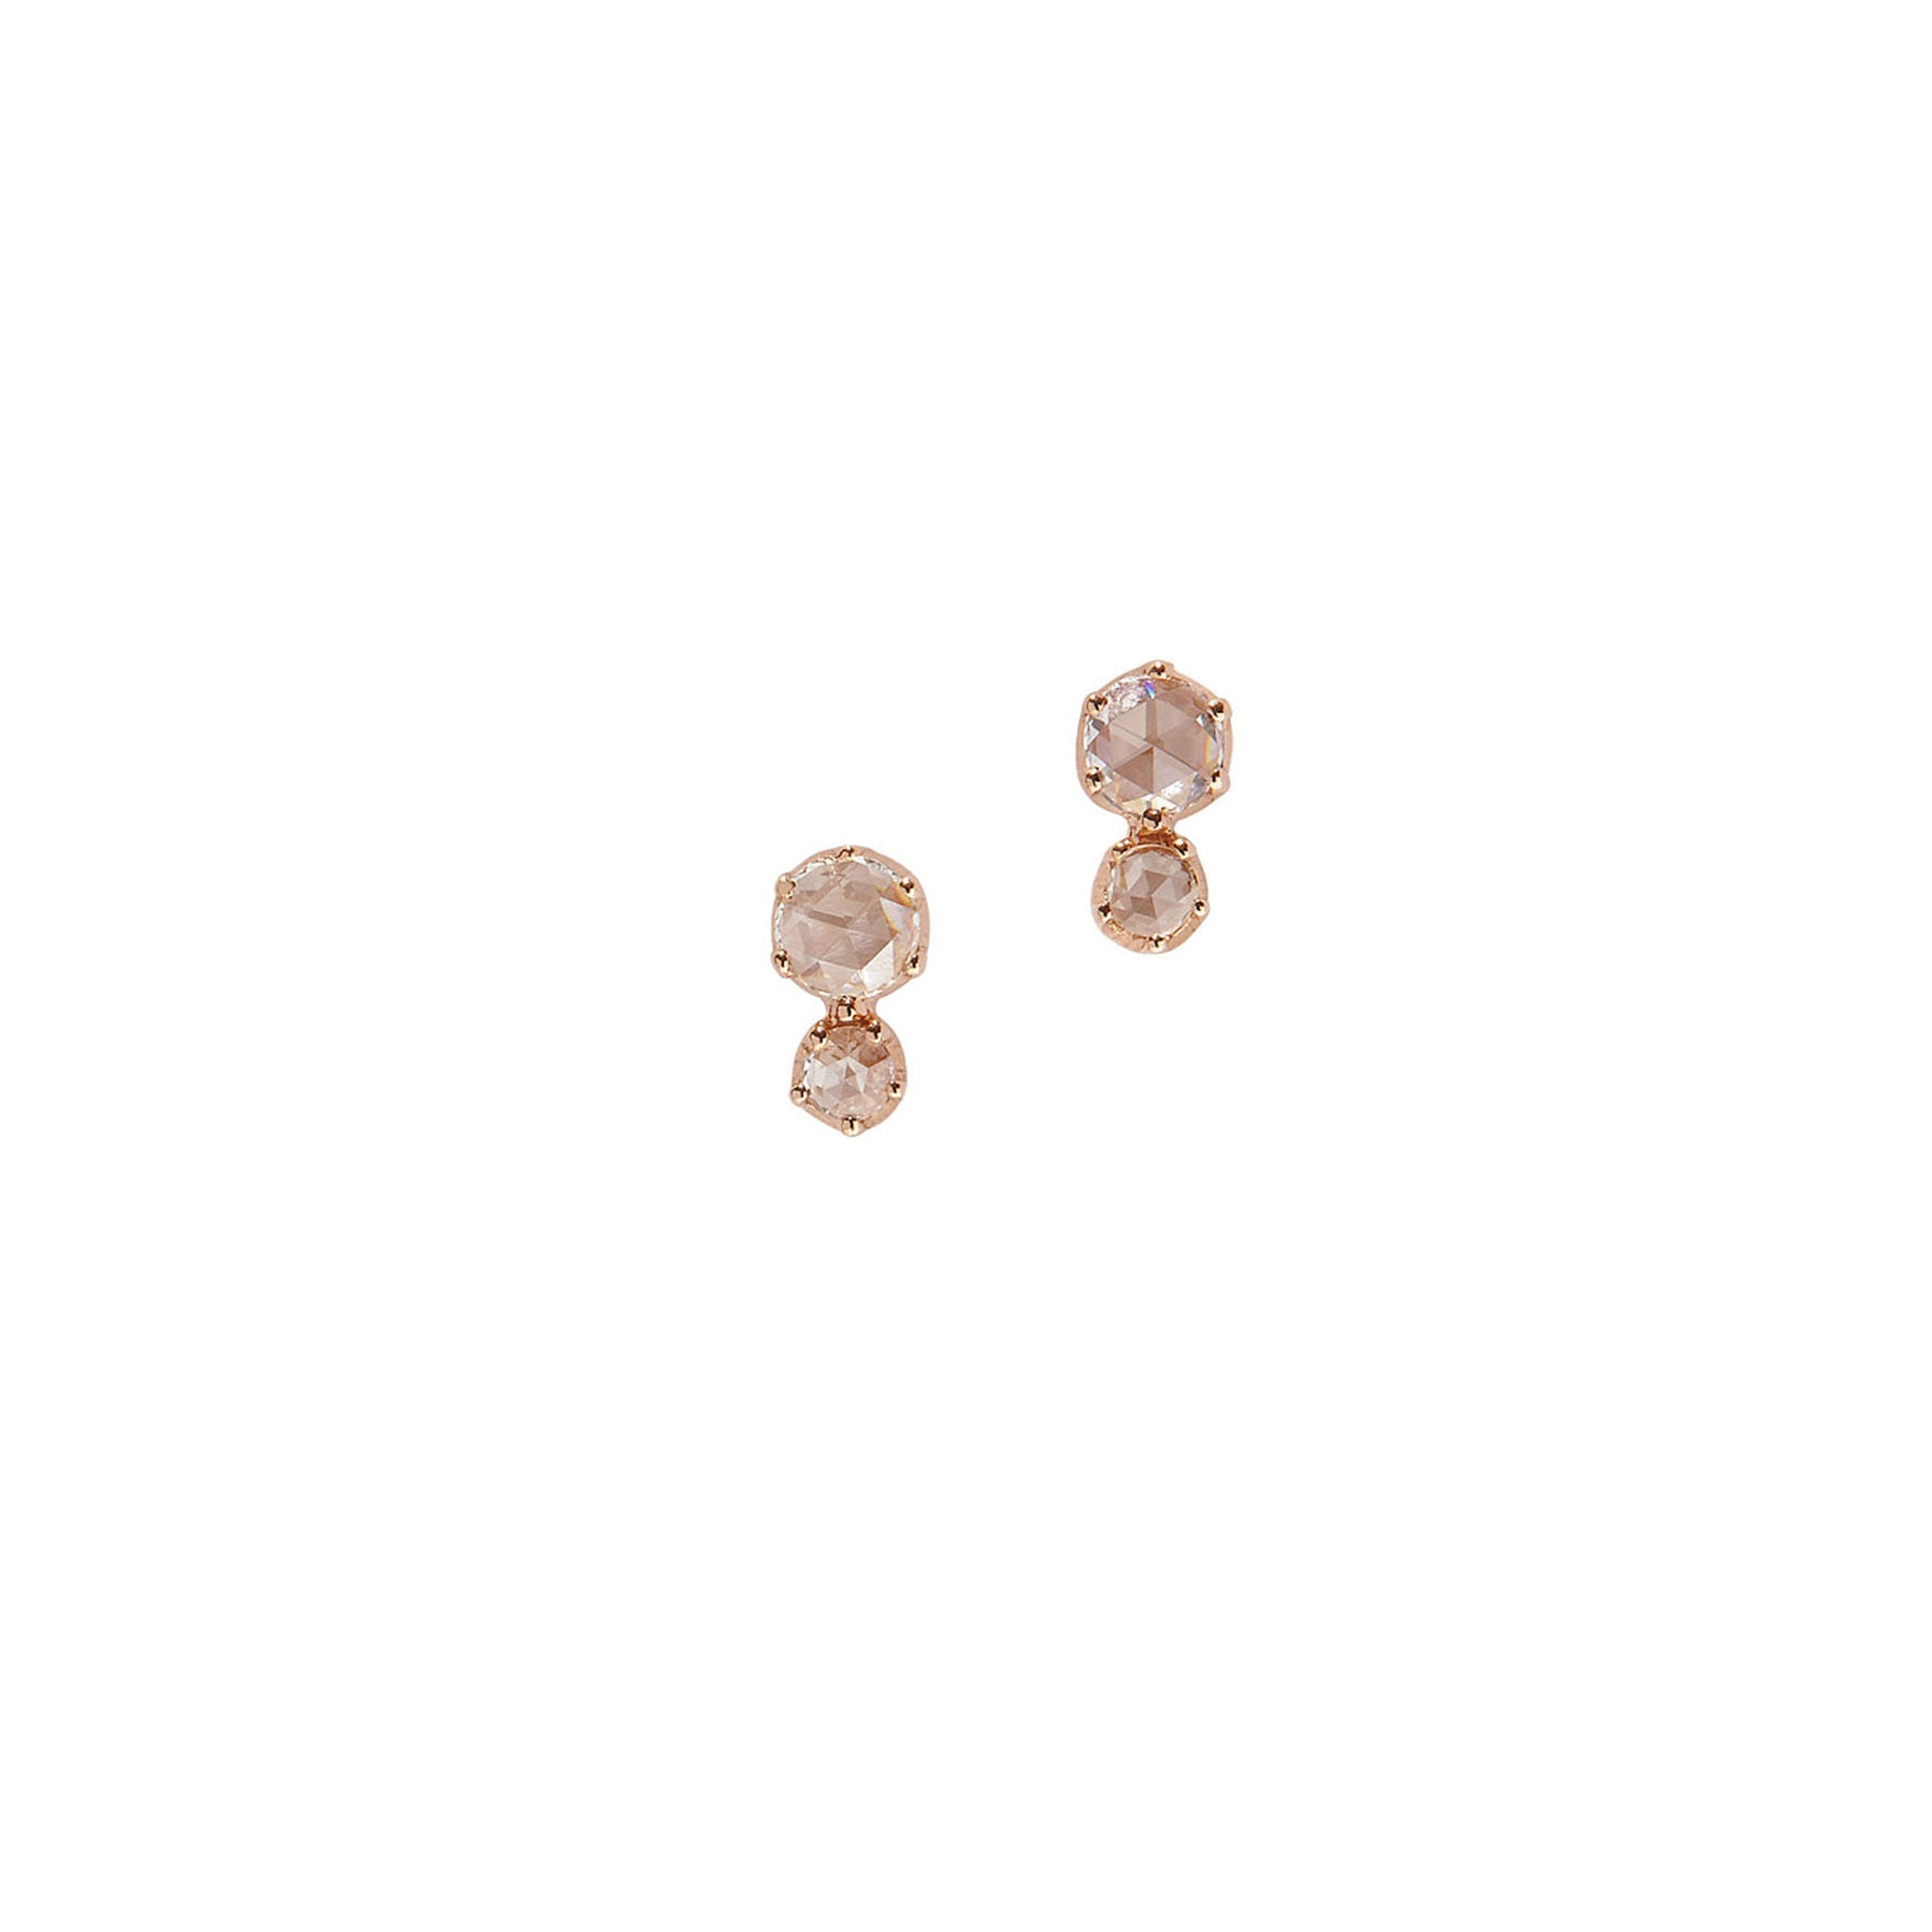 The Duet Earrings